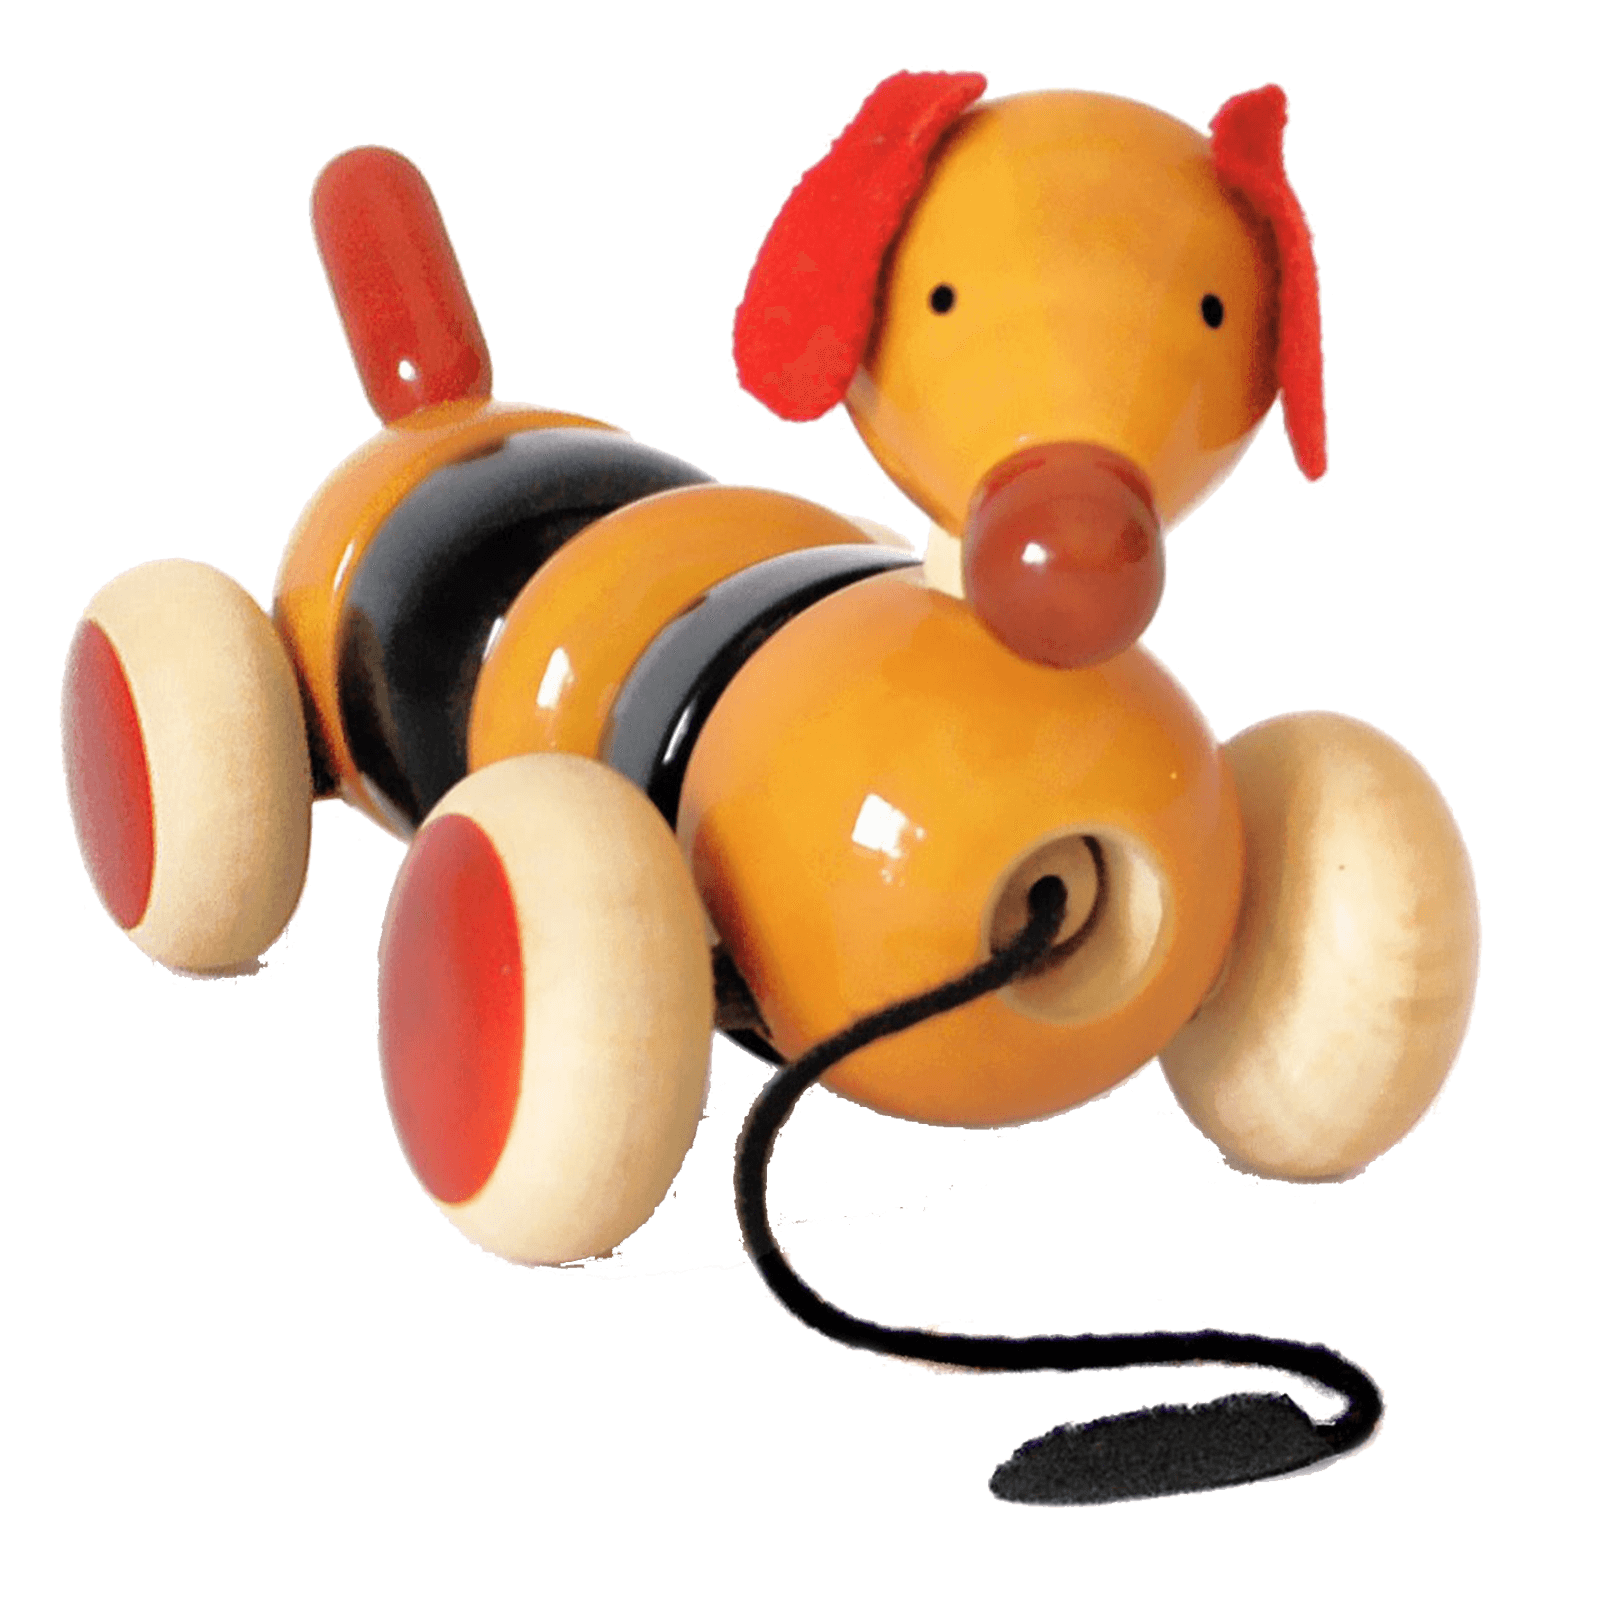 handmade non-toxic wooden toys, by Ethiqana a shop specialising in eco friendly products, earth friendly products and sustainable products.